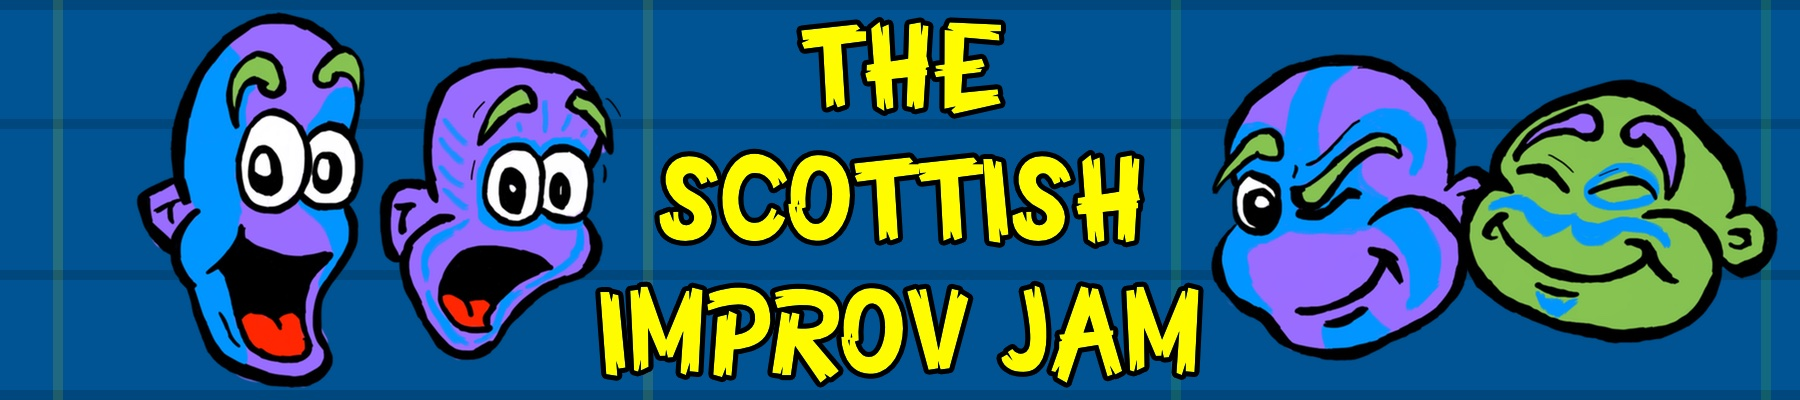 The Scottish Improv Jam